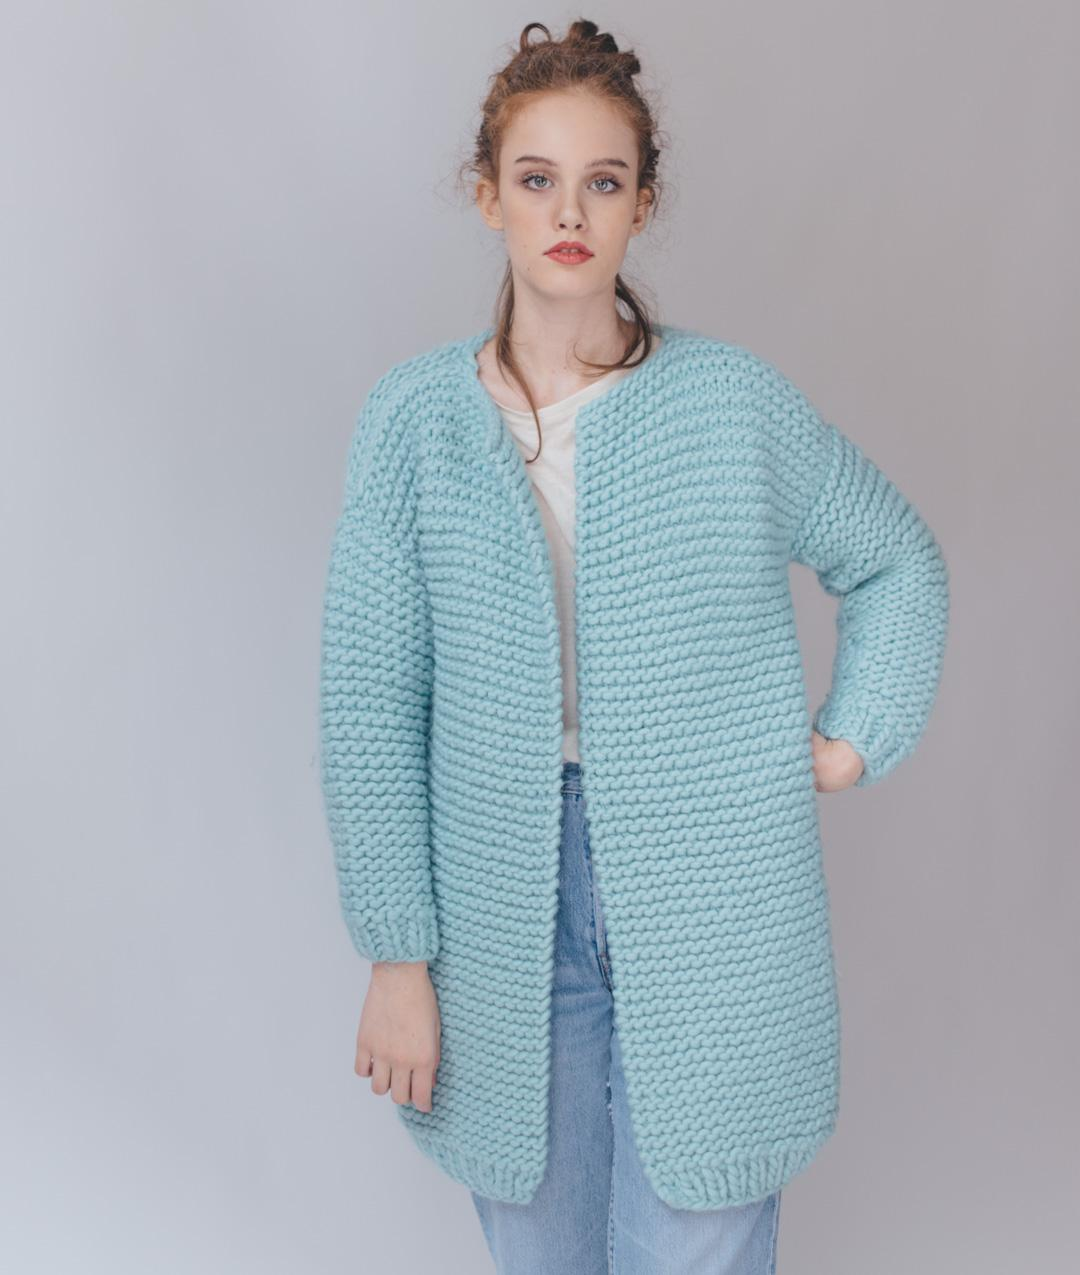 Cardigans and Vests  - Wool - Cindy Cardigan  - 1